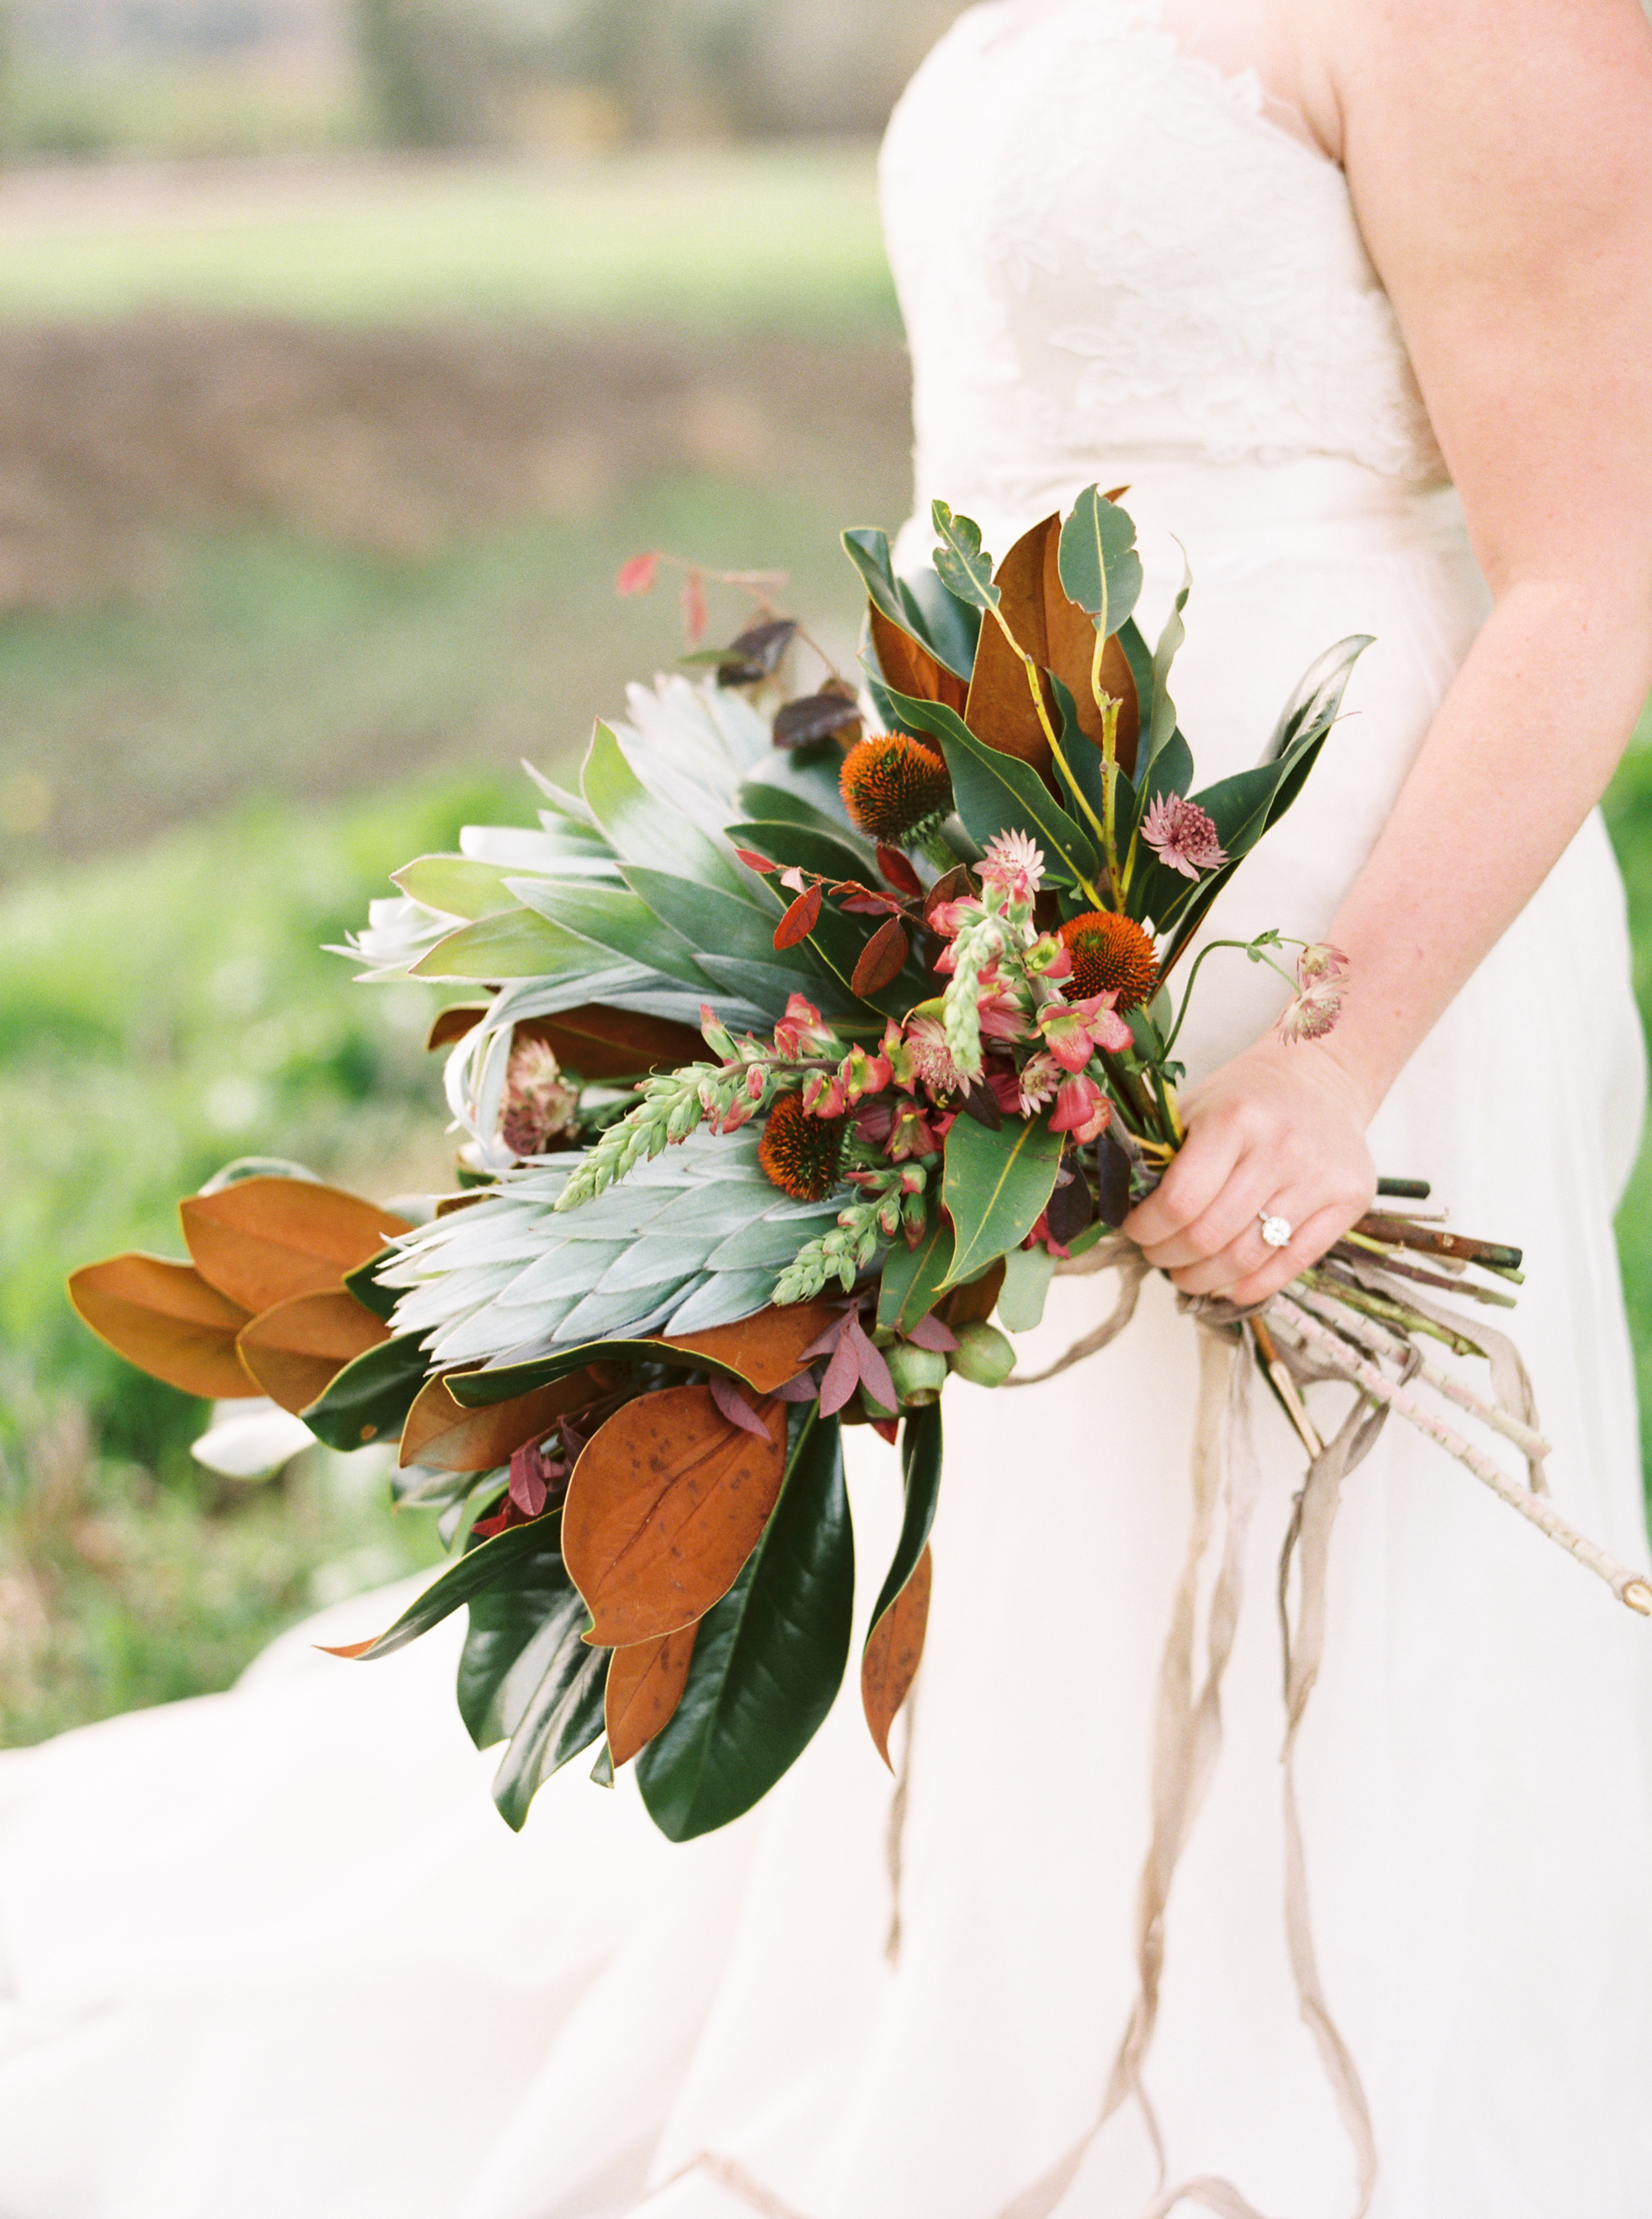 boho-inspired-wedding-at-casa-bella-in-sunol-california-61.jpg